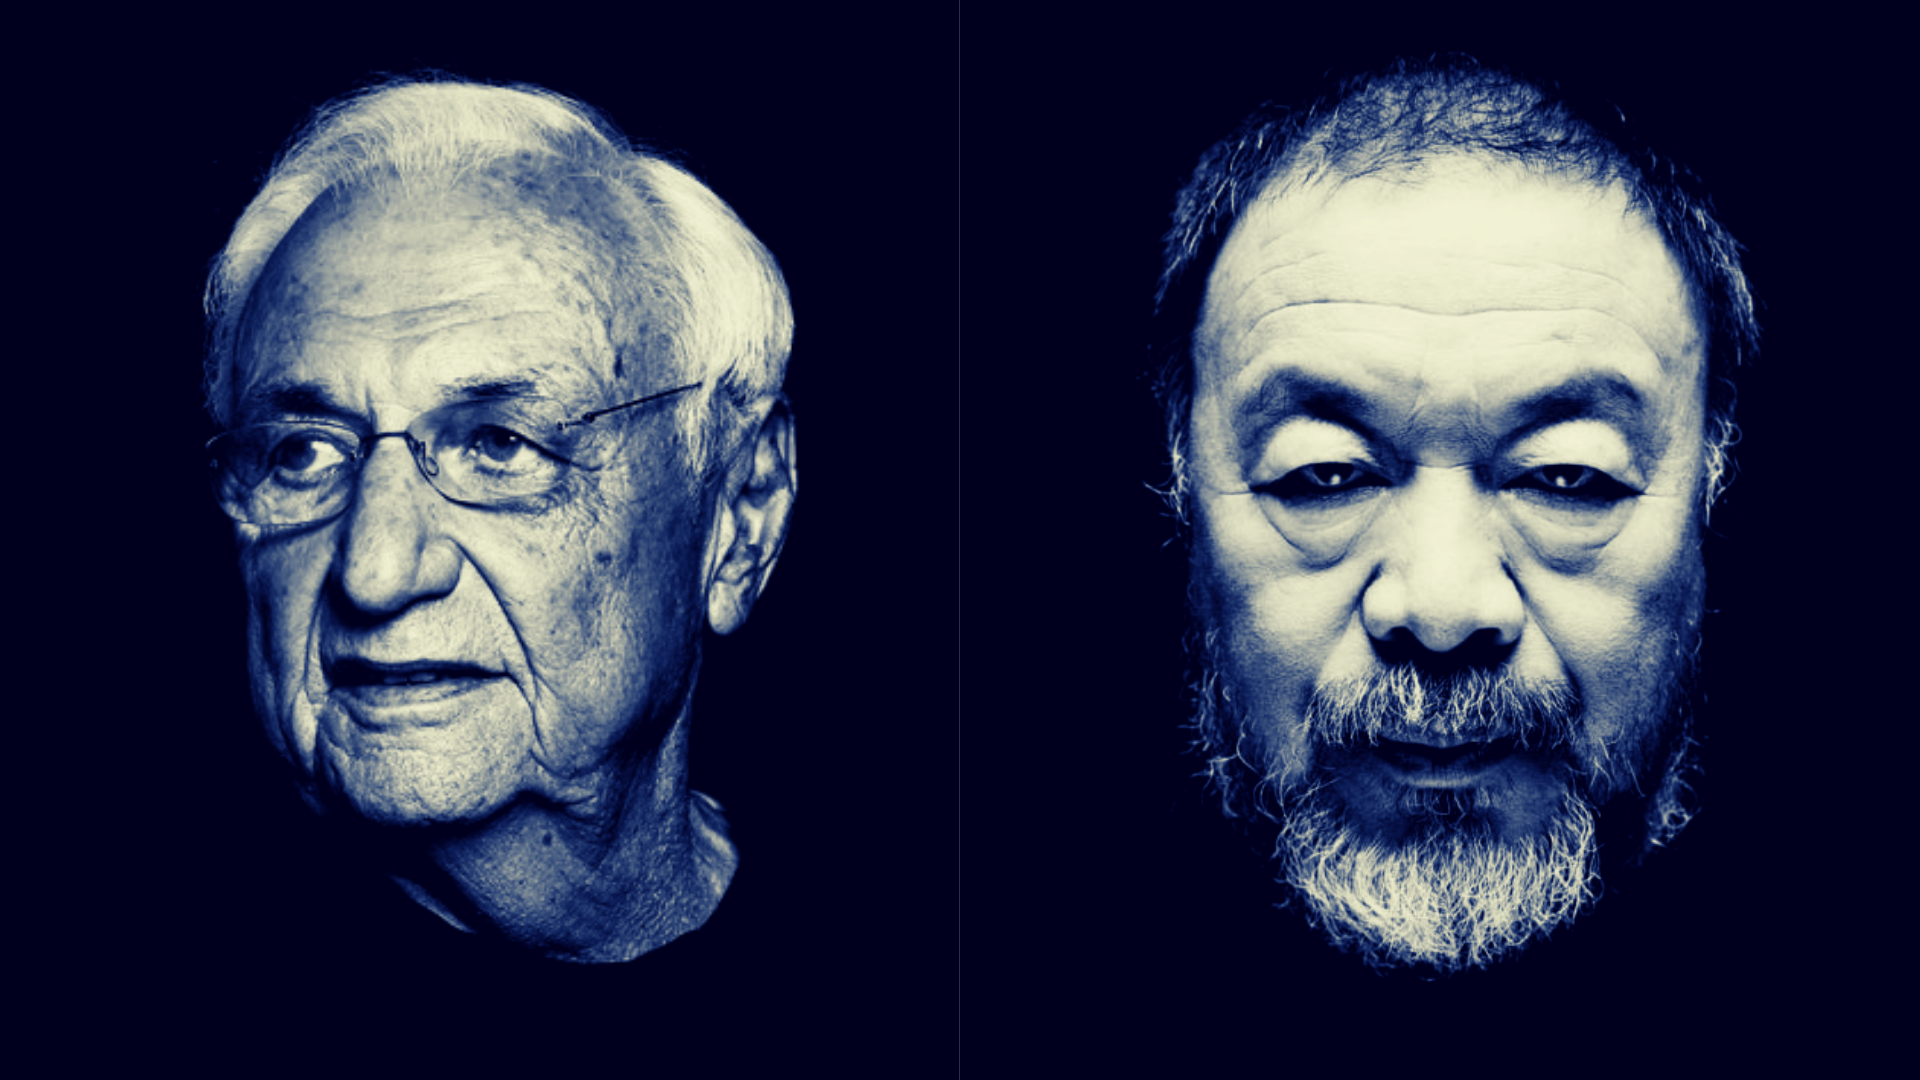 The Architect and The Artist: Frank Gehry and Ai Weiwei meet for a memorable conversation